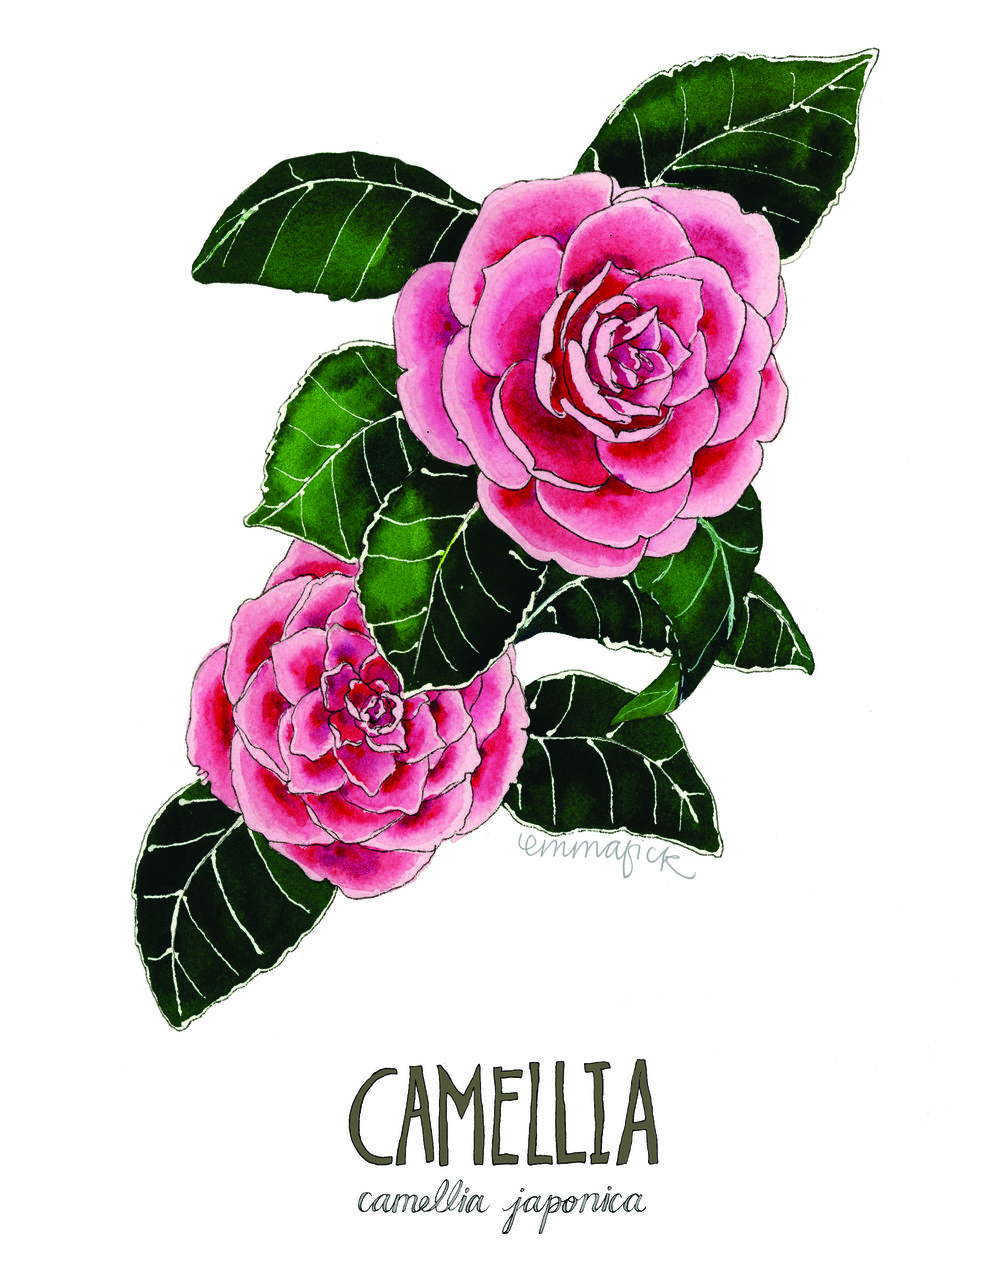 Camellia with signature.jpg